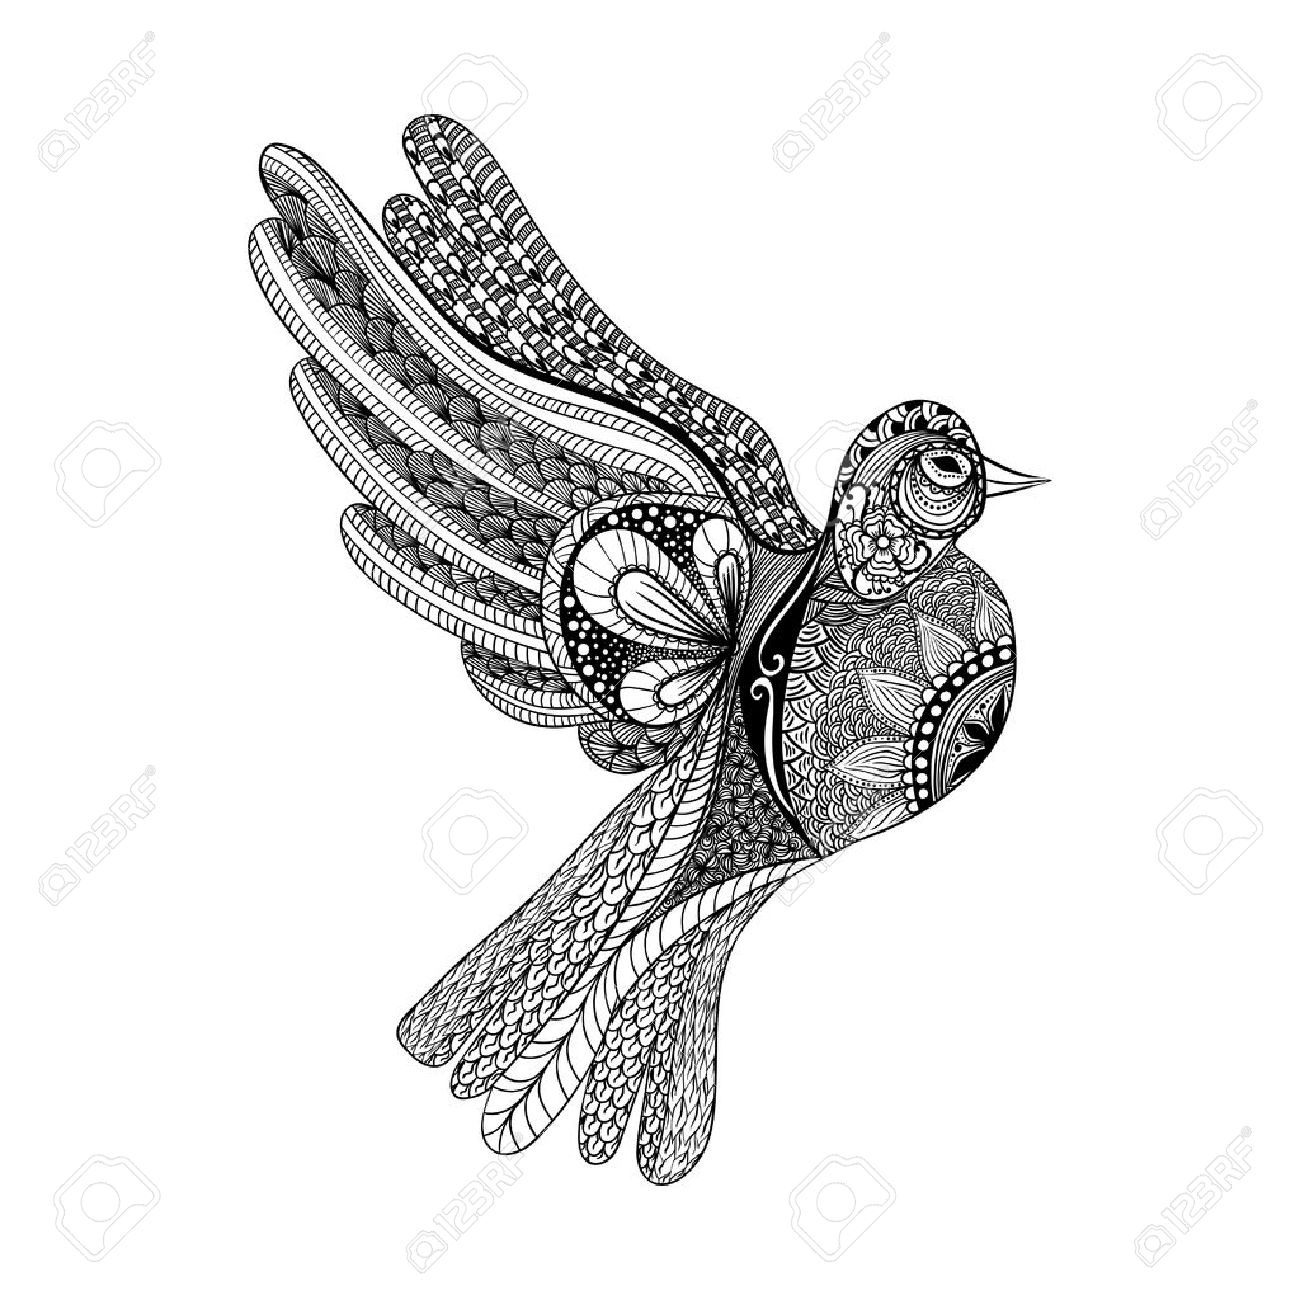 Zentangle Stylized Floral Pigeon For Peace Day Hand Drawn Dove Of Vector Illustration